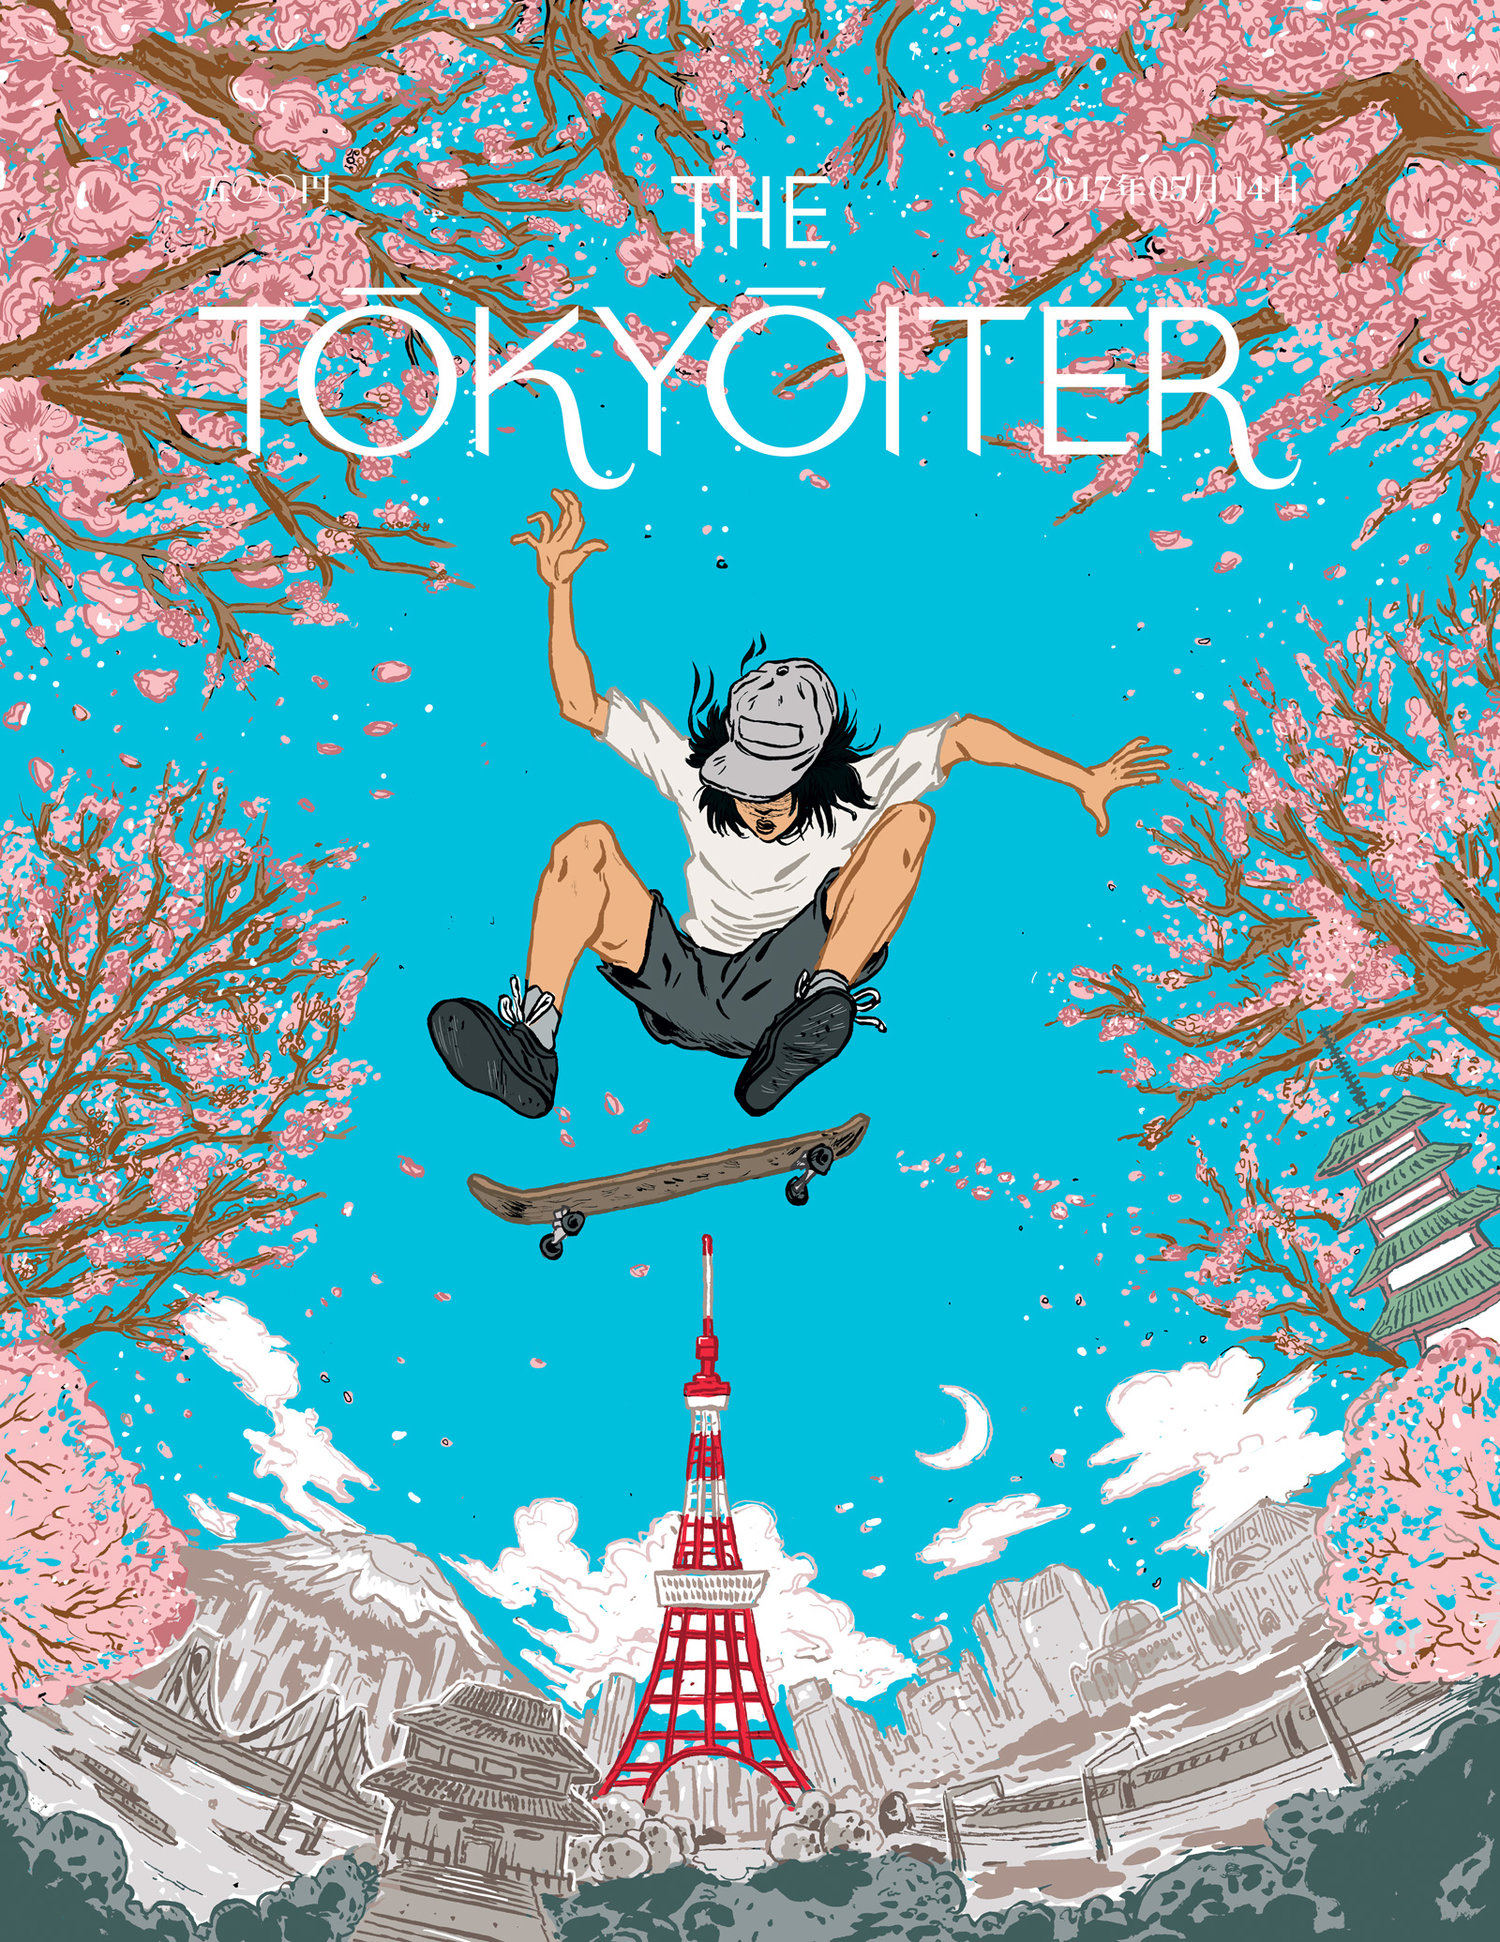 The Tokyoiter Giclée print preorders